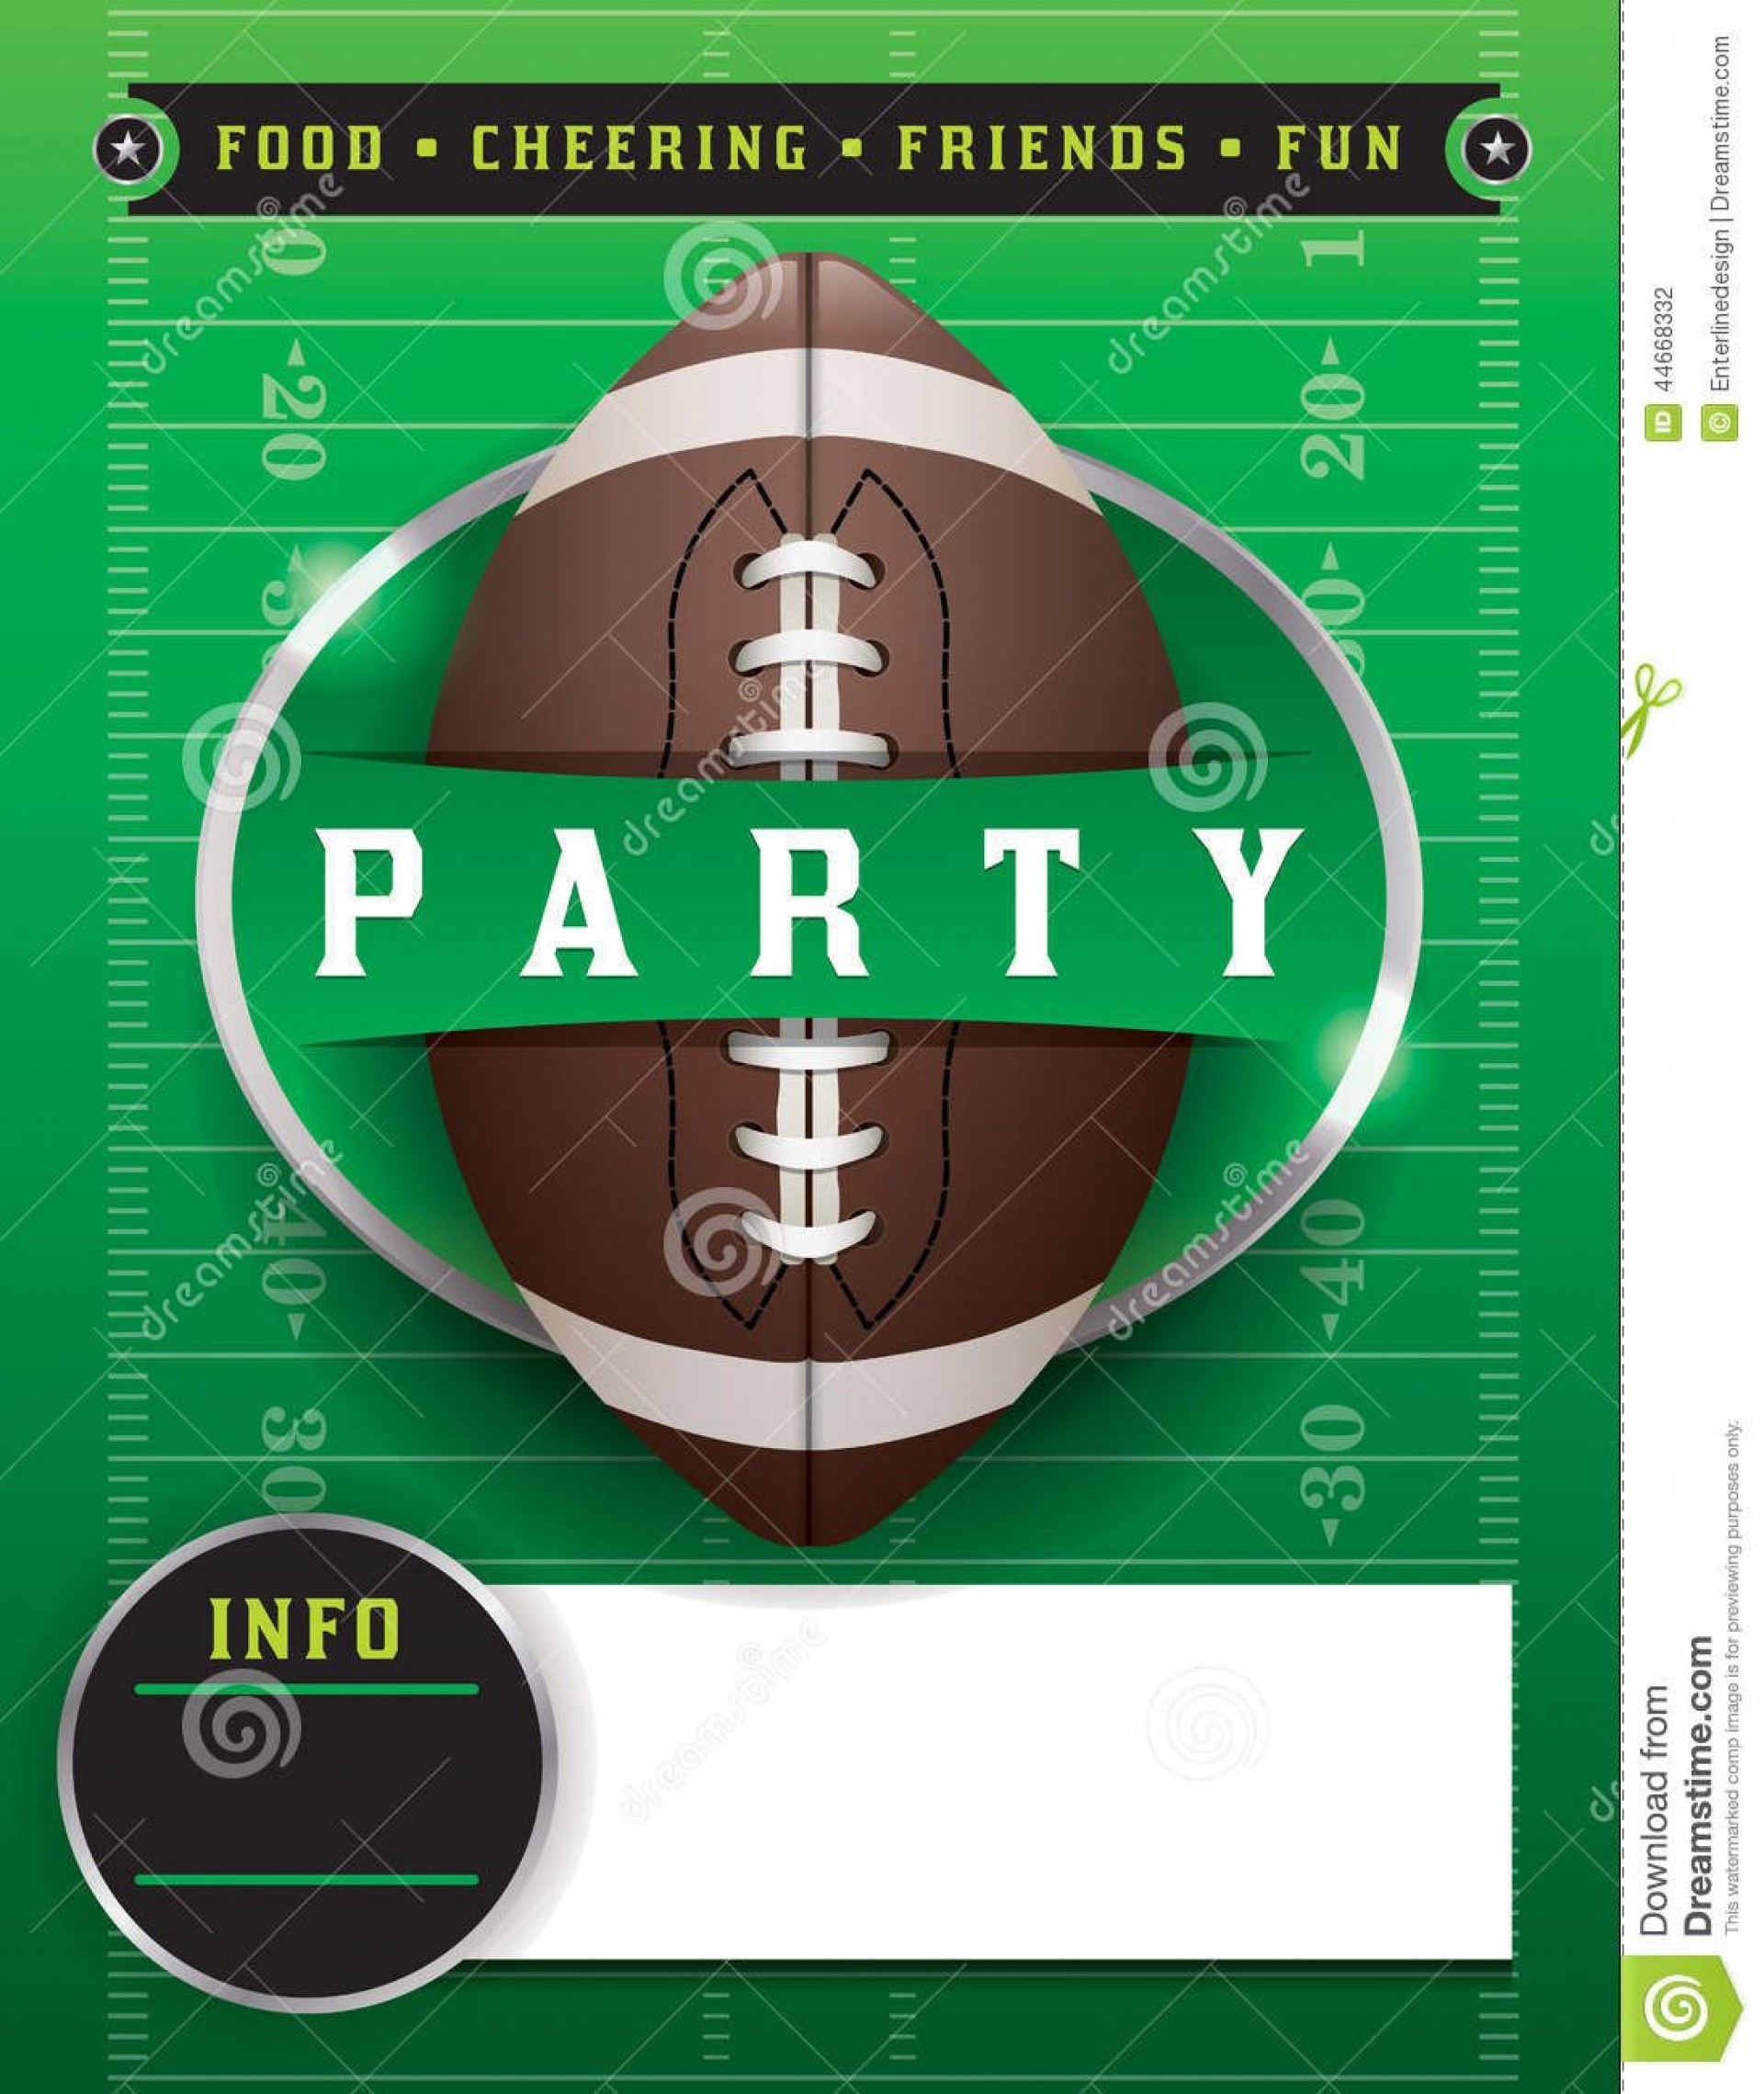 004 Phenomenal Free Tailgate Party Flyer Template Download Highest Quality 1920